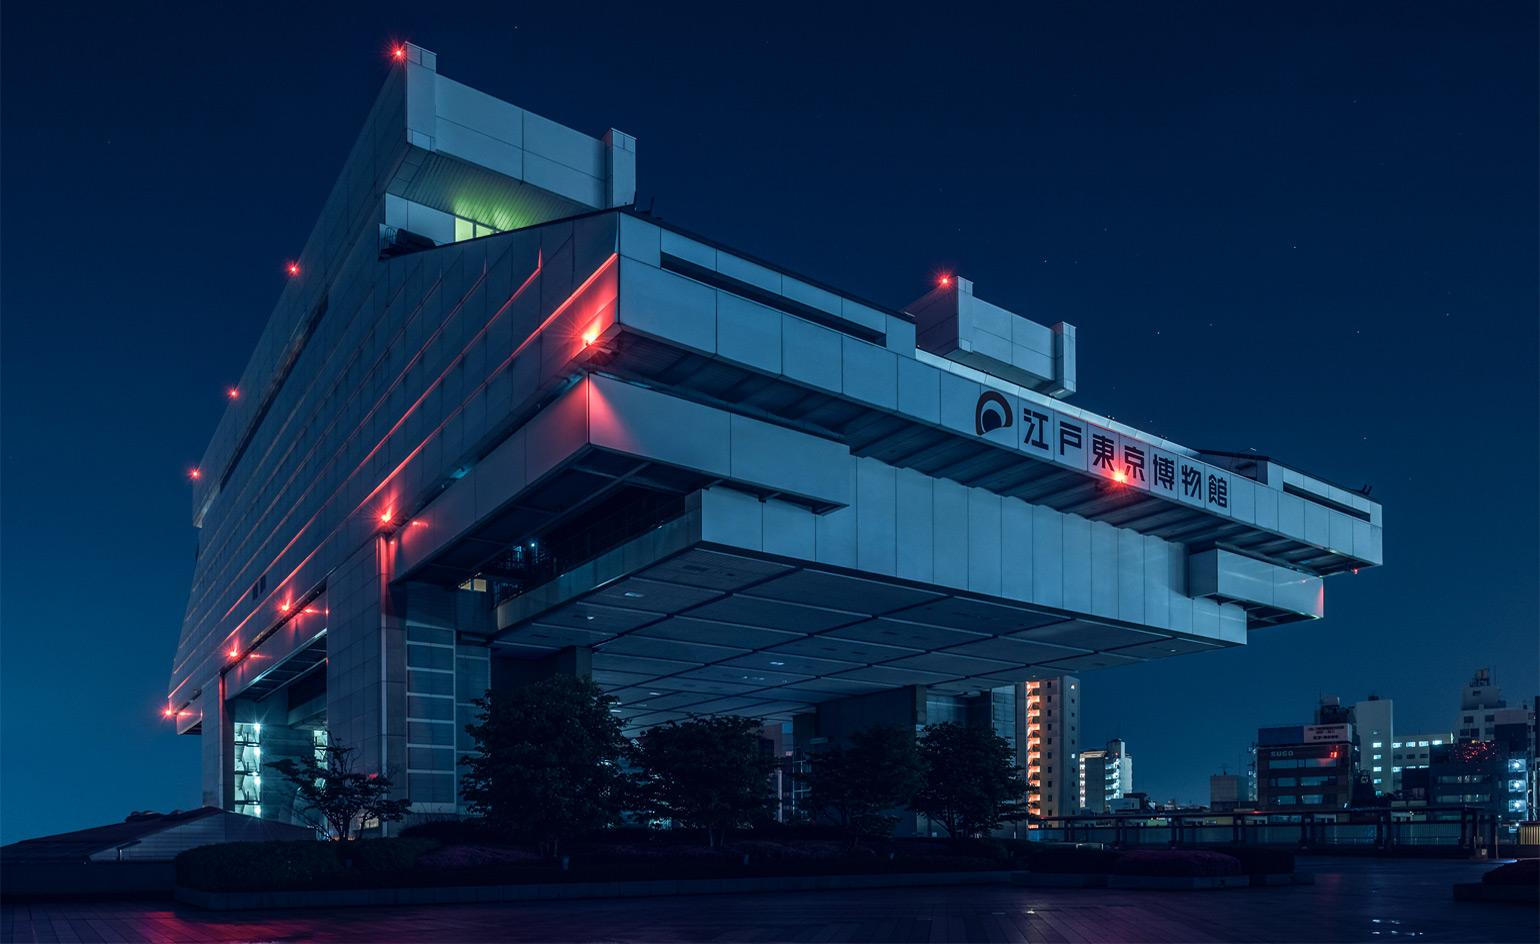 Tom Blachford captures Tokyo's dark side in 'Nihon Noir